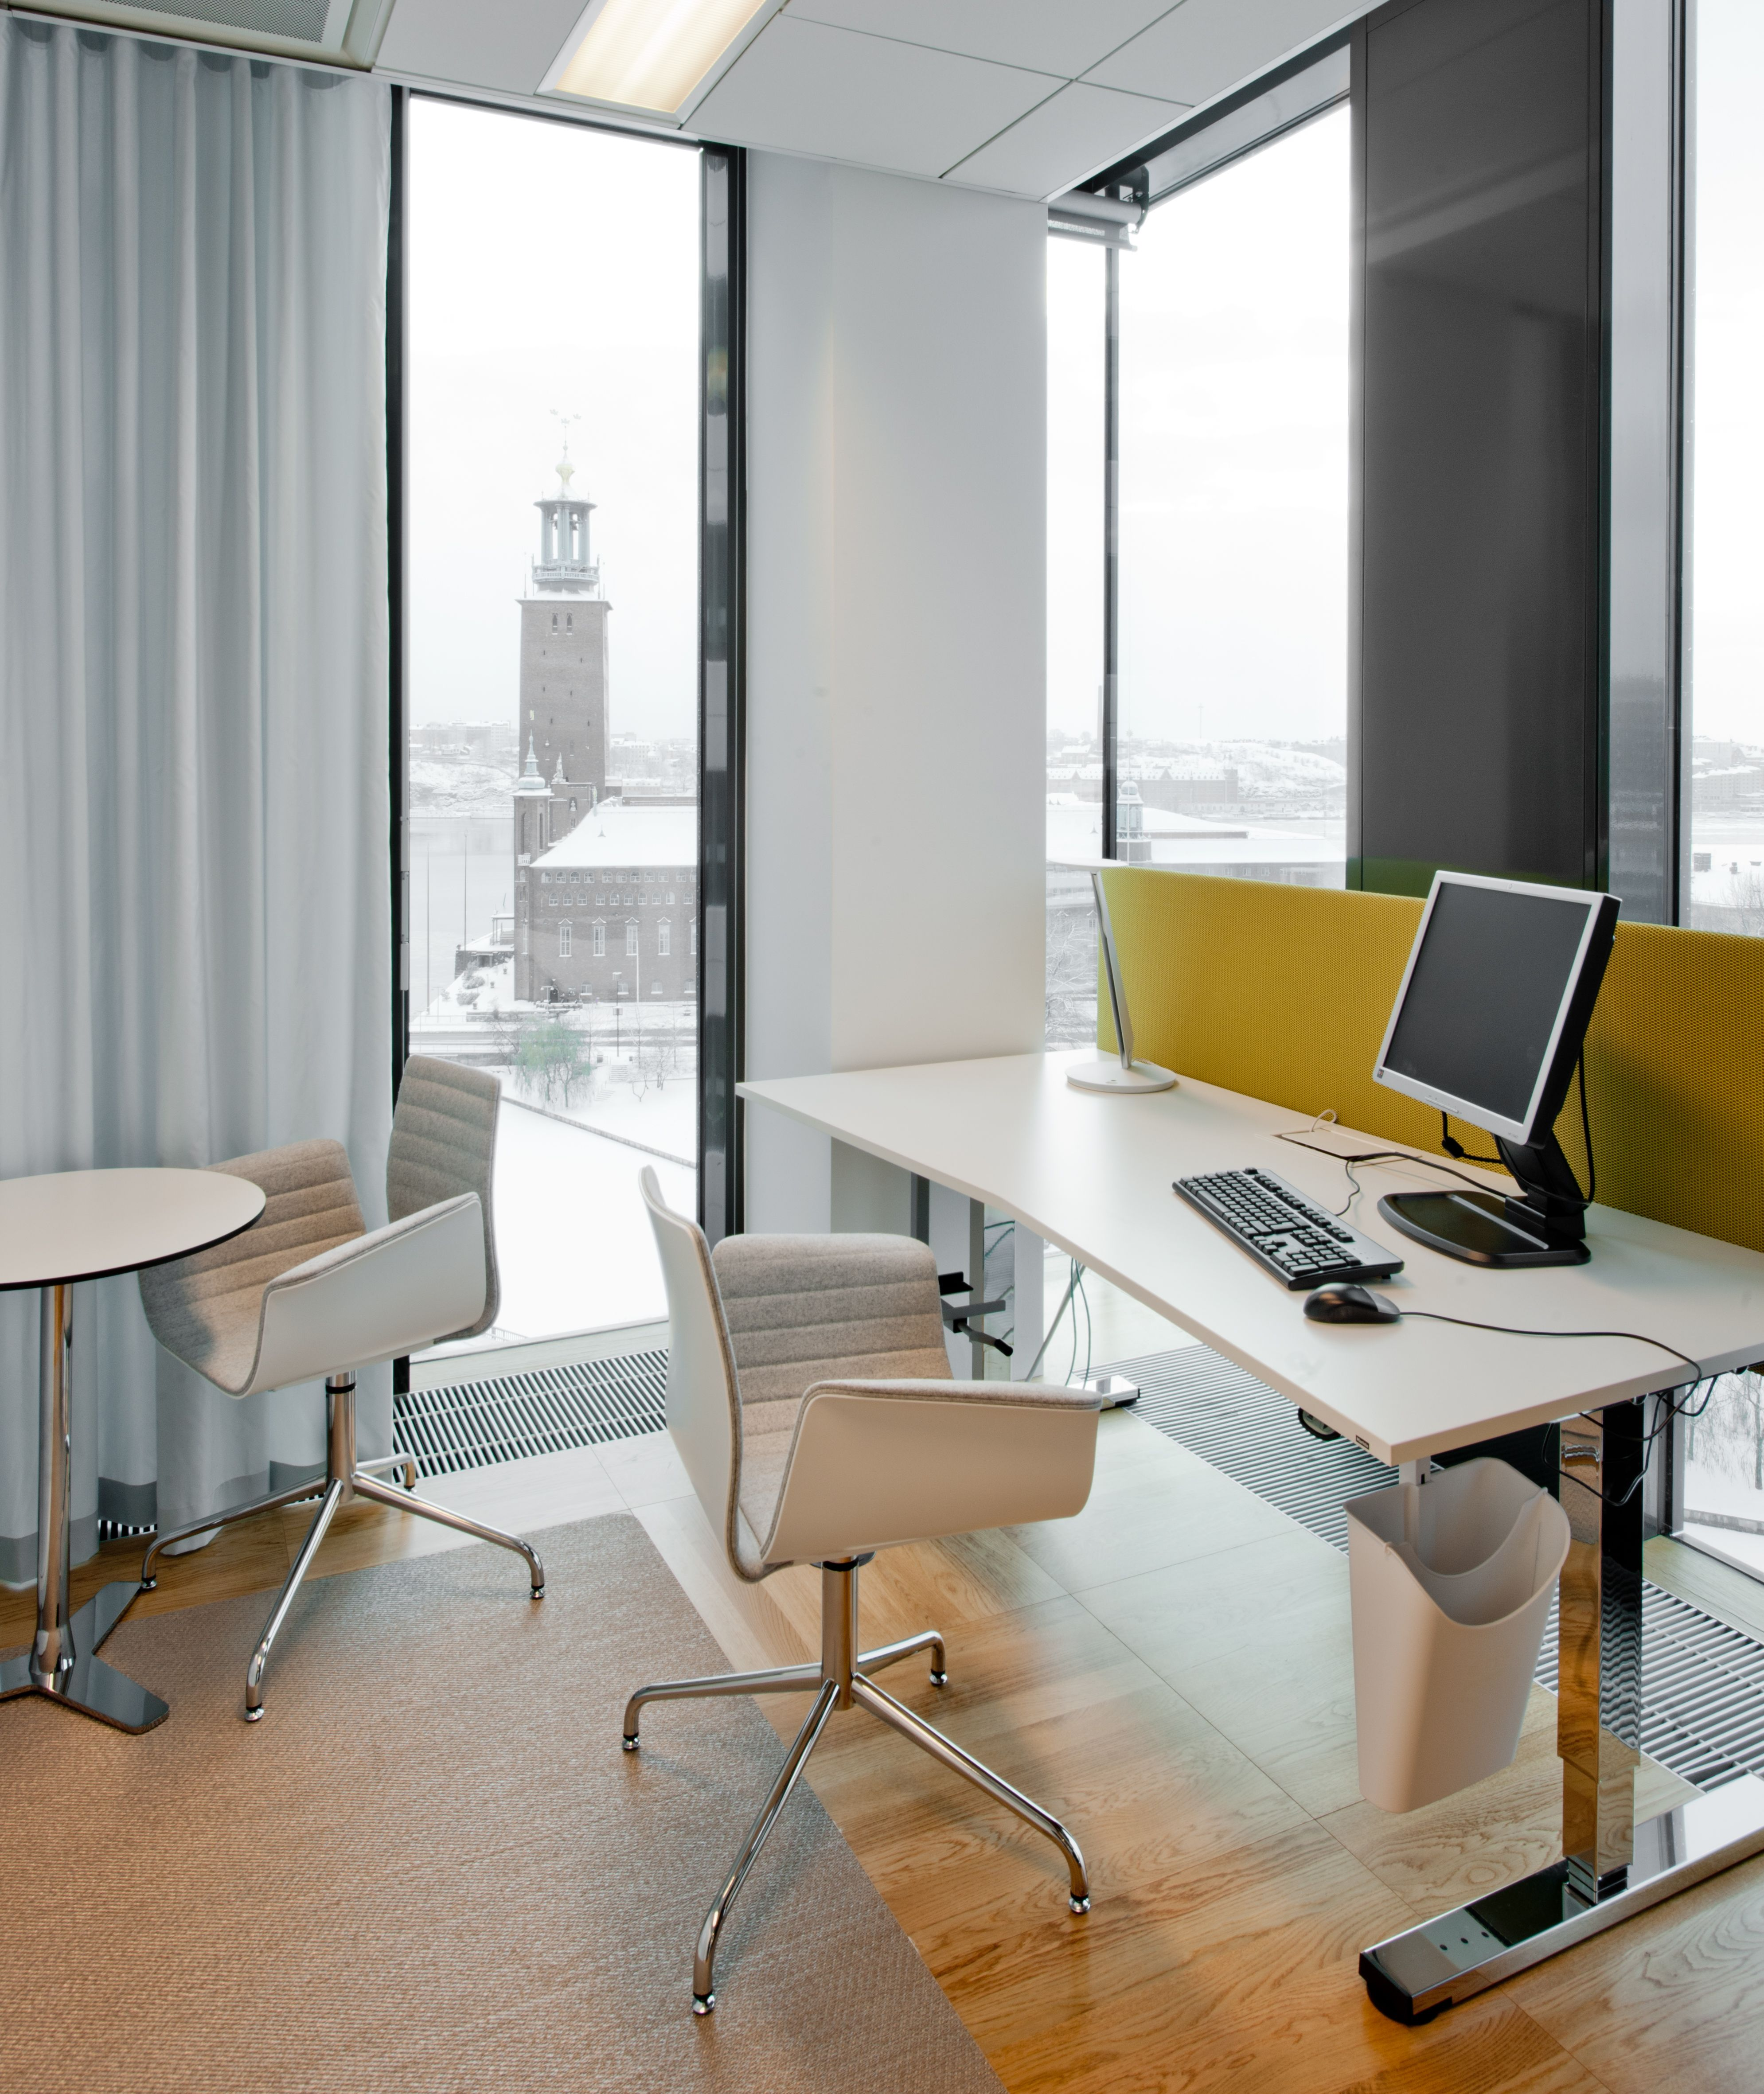 Meeting chair designed by enzo berti for bross at nuac